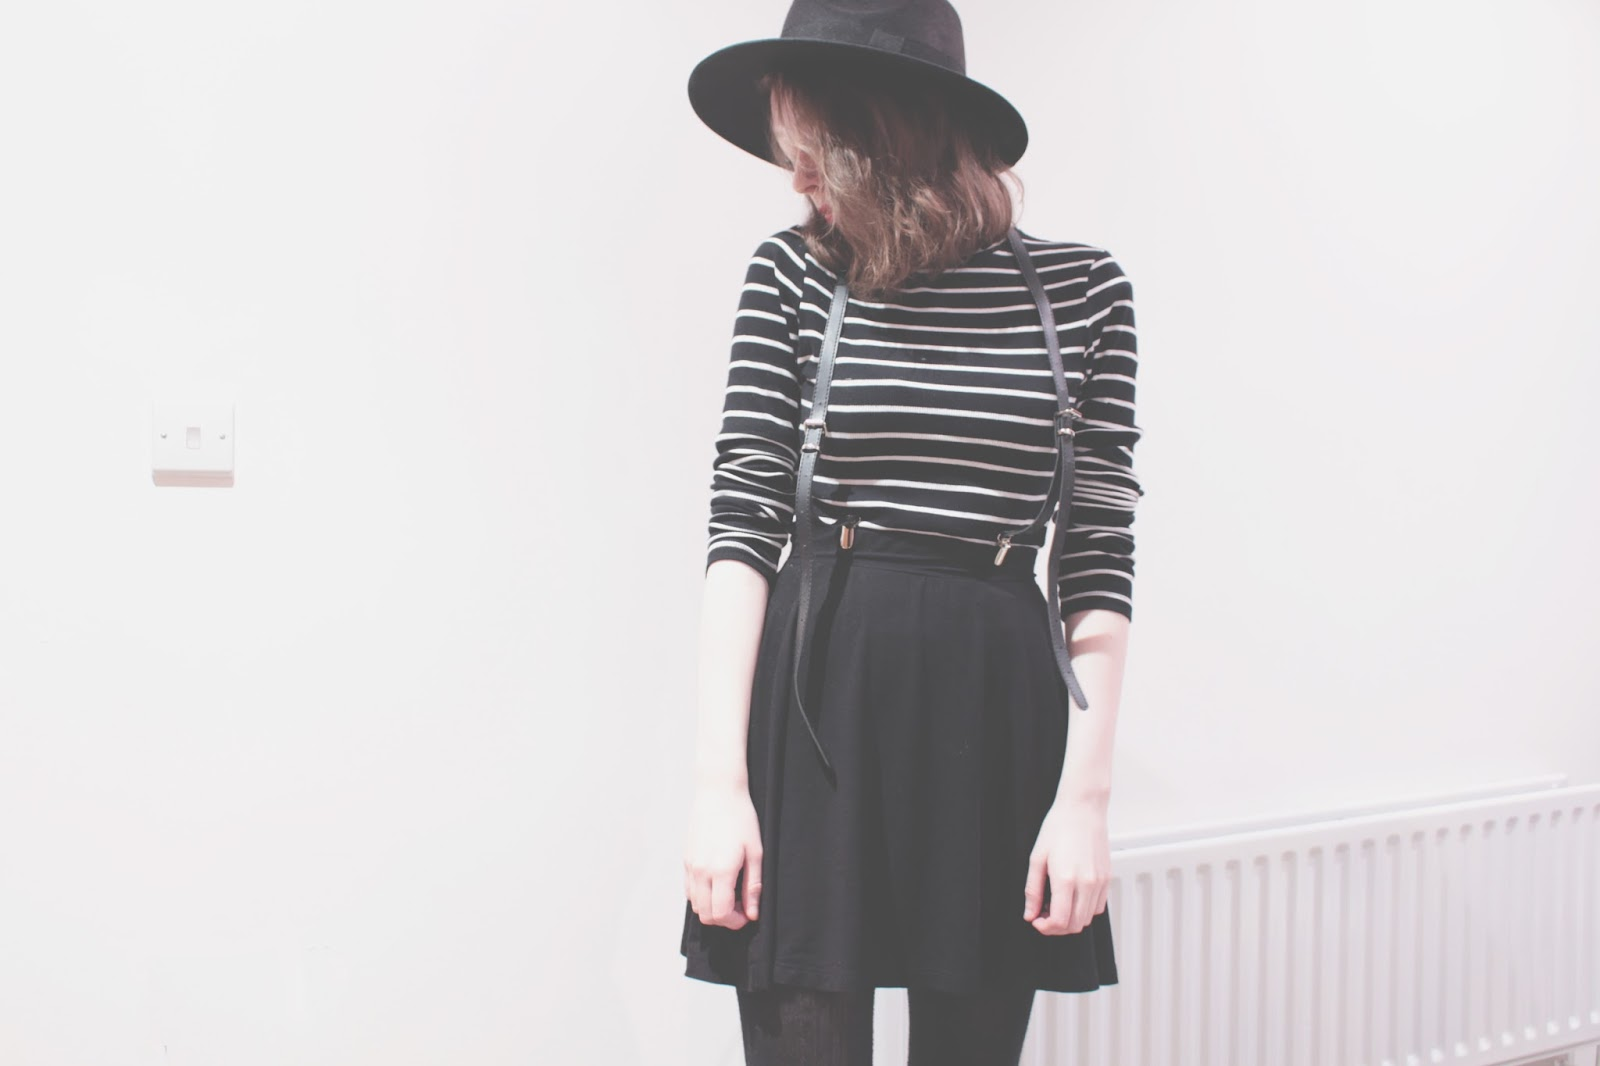 braces casual outfit uk style blogger outfit inspiration